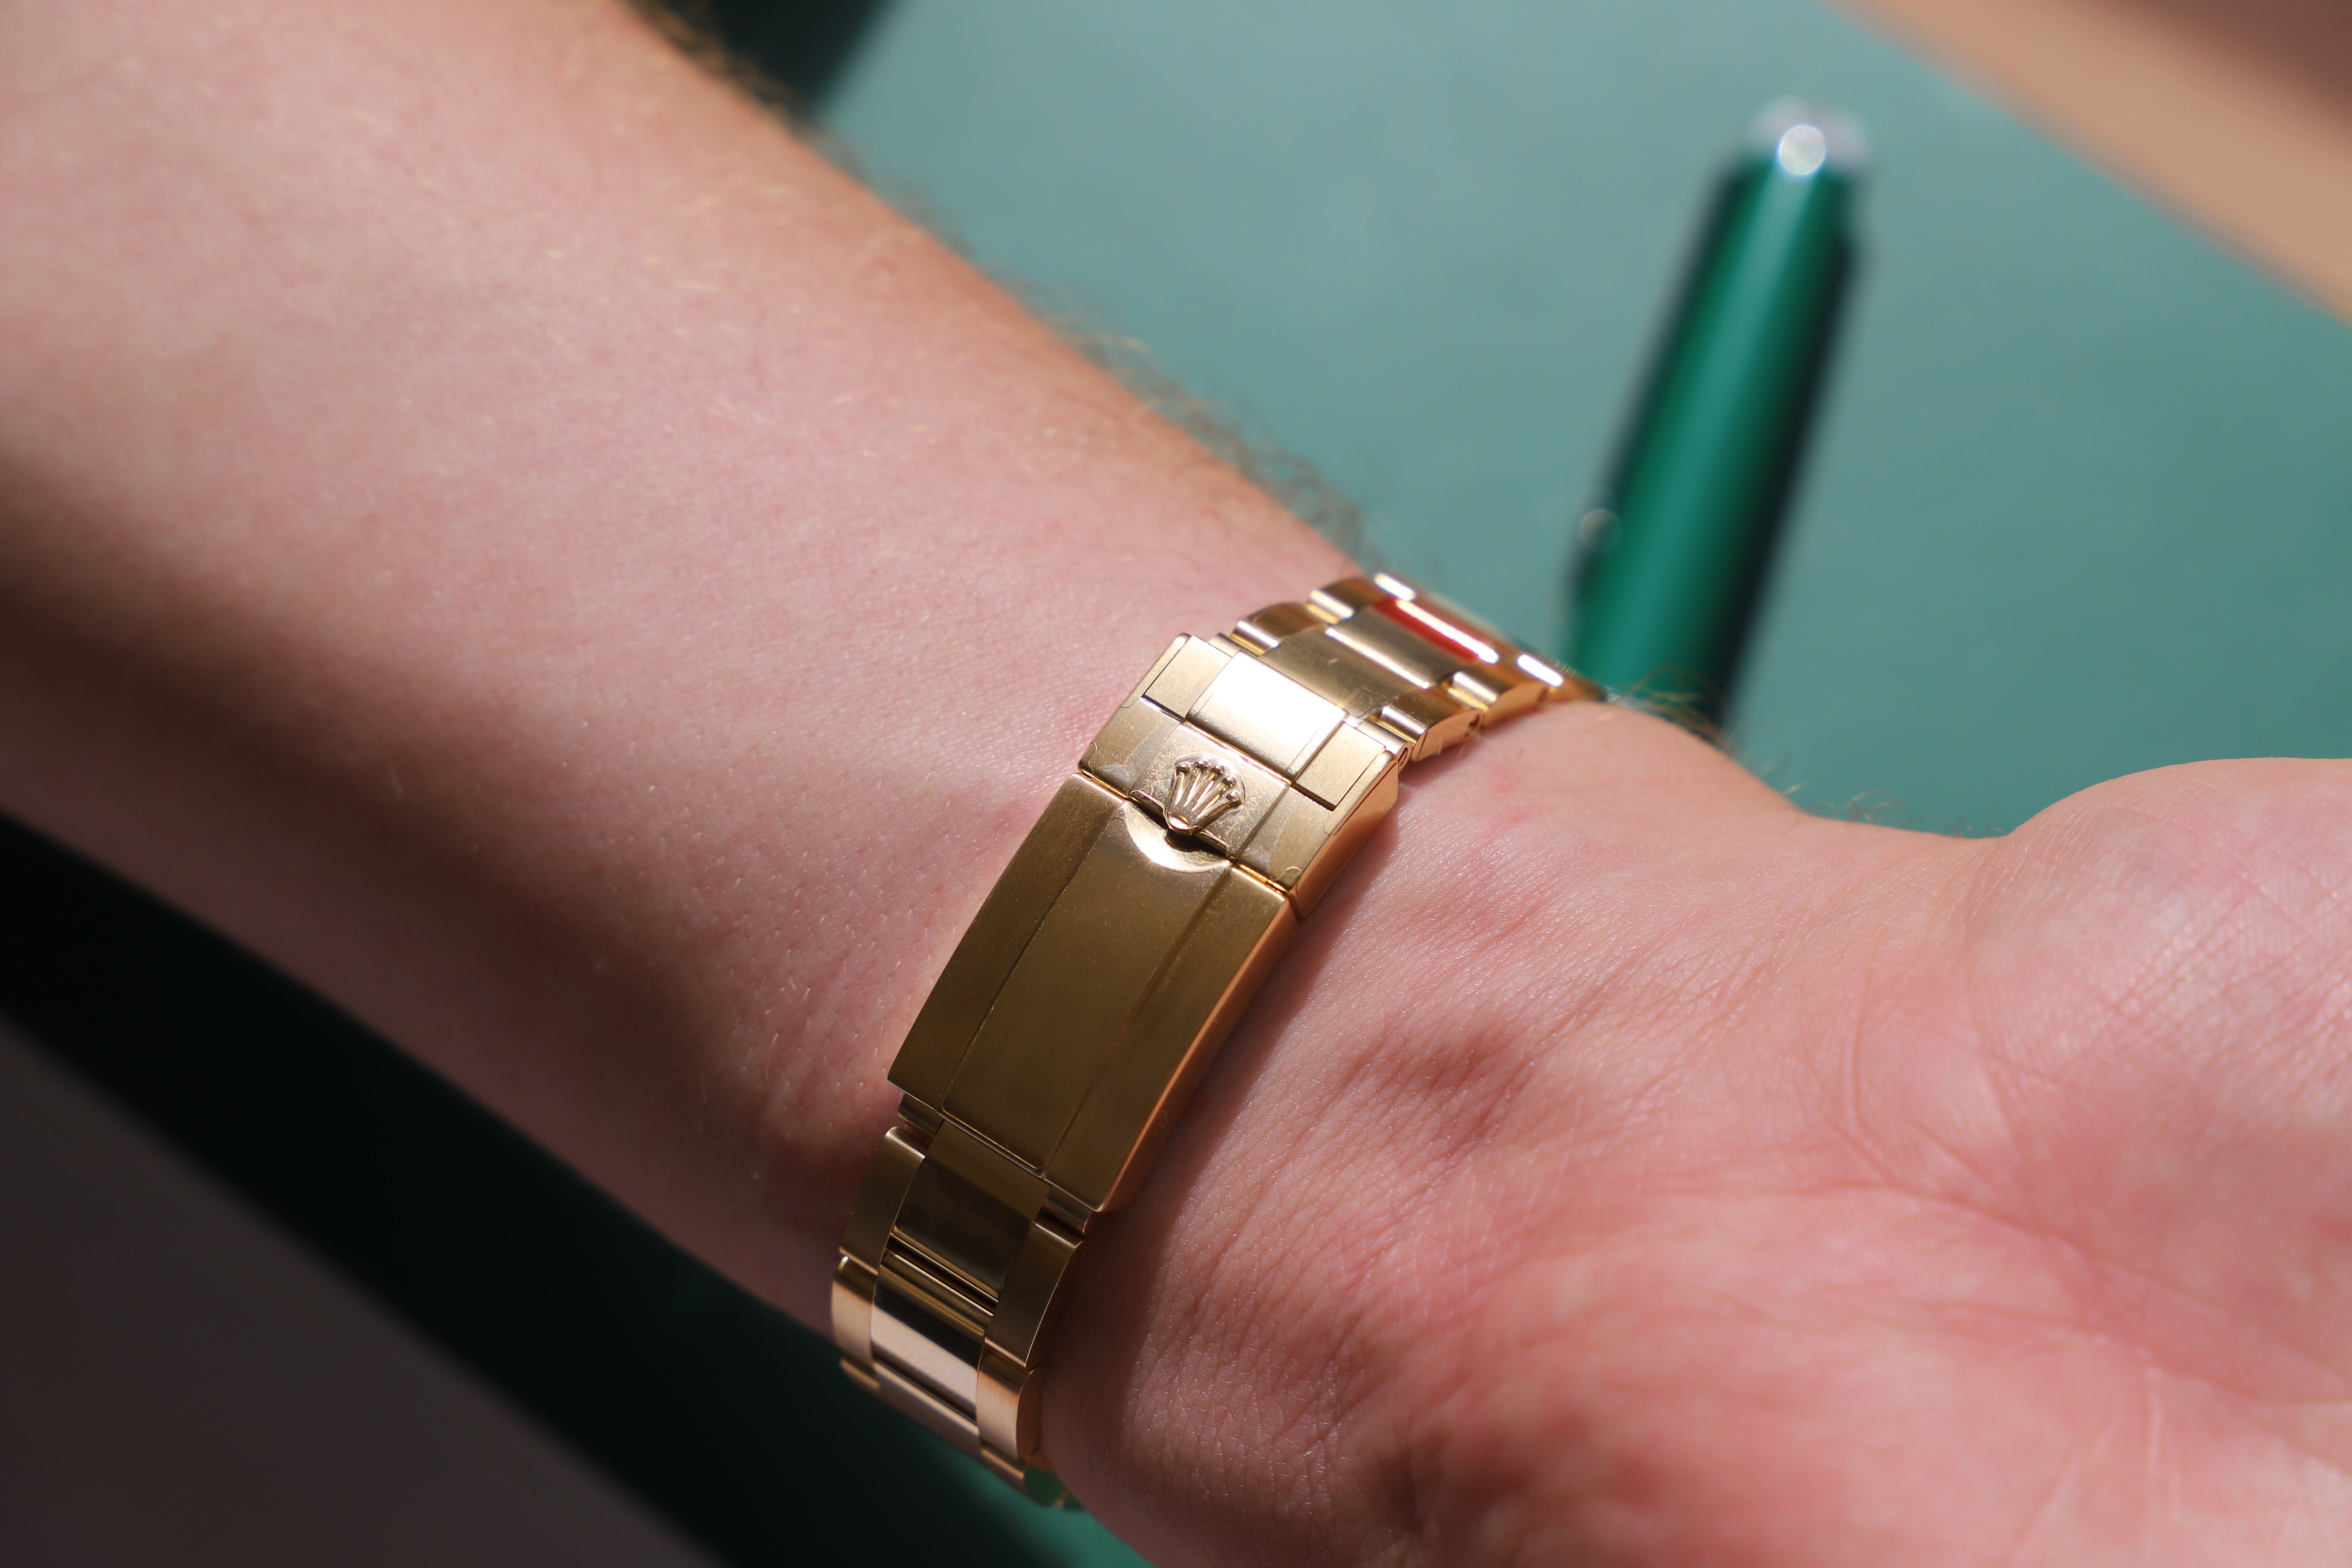 Yellow gold Rolex oyster bracelet clasp